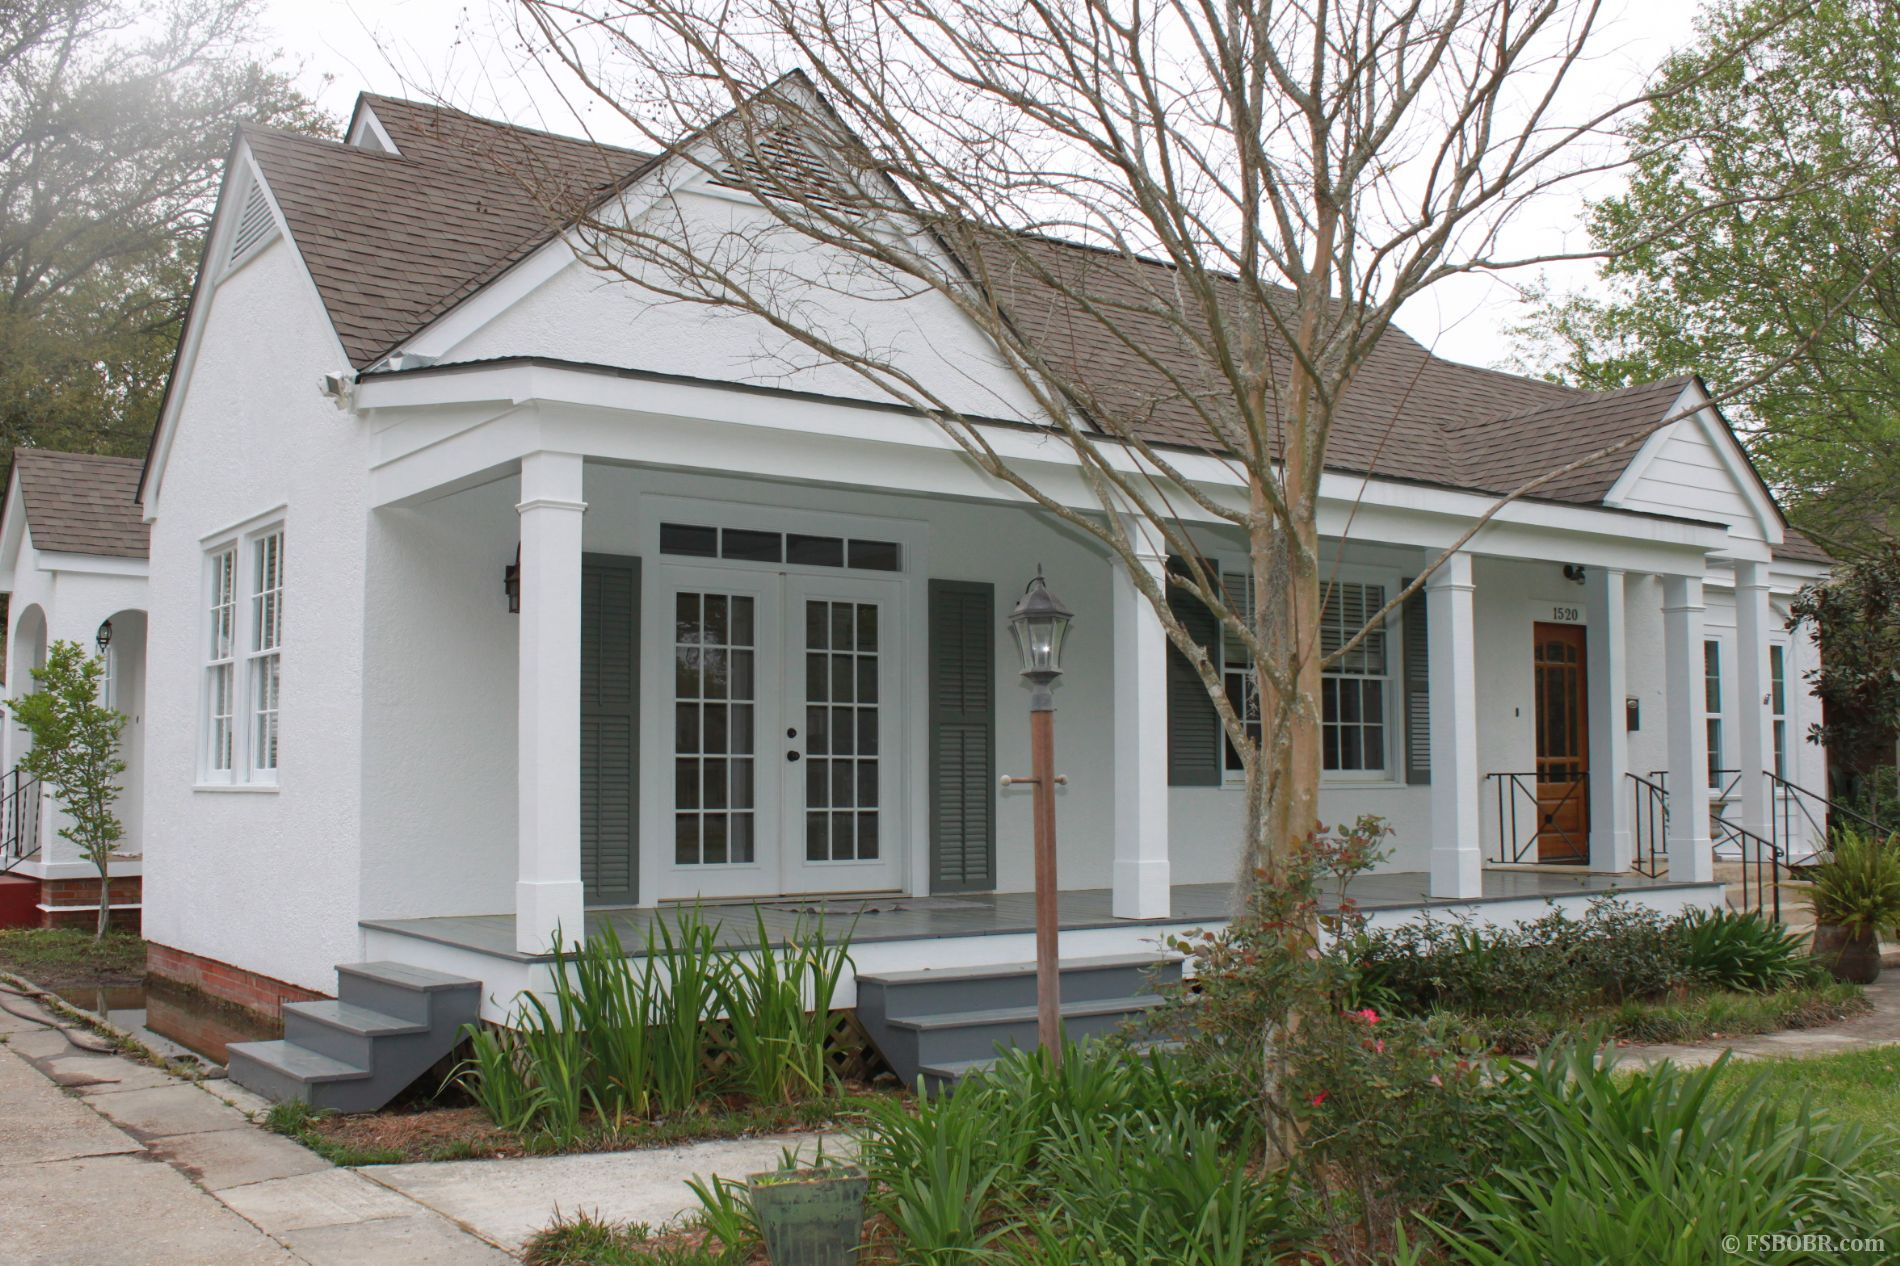 Beautiful Renovated Home in Sought After Steele Place. For Sale By Owner Listings by FSBOBR com  Baton Rouge FSBO and